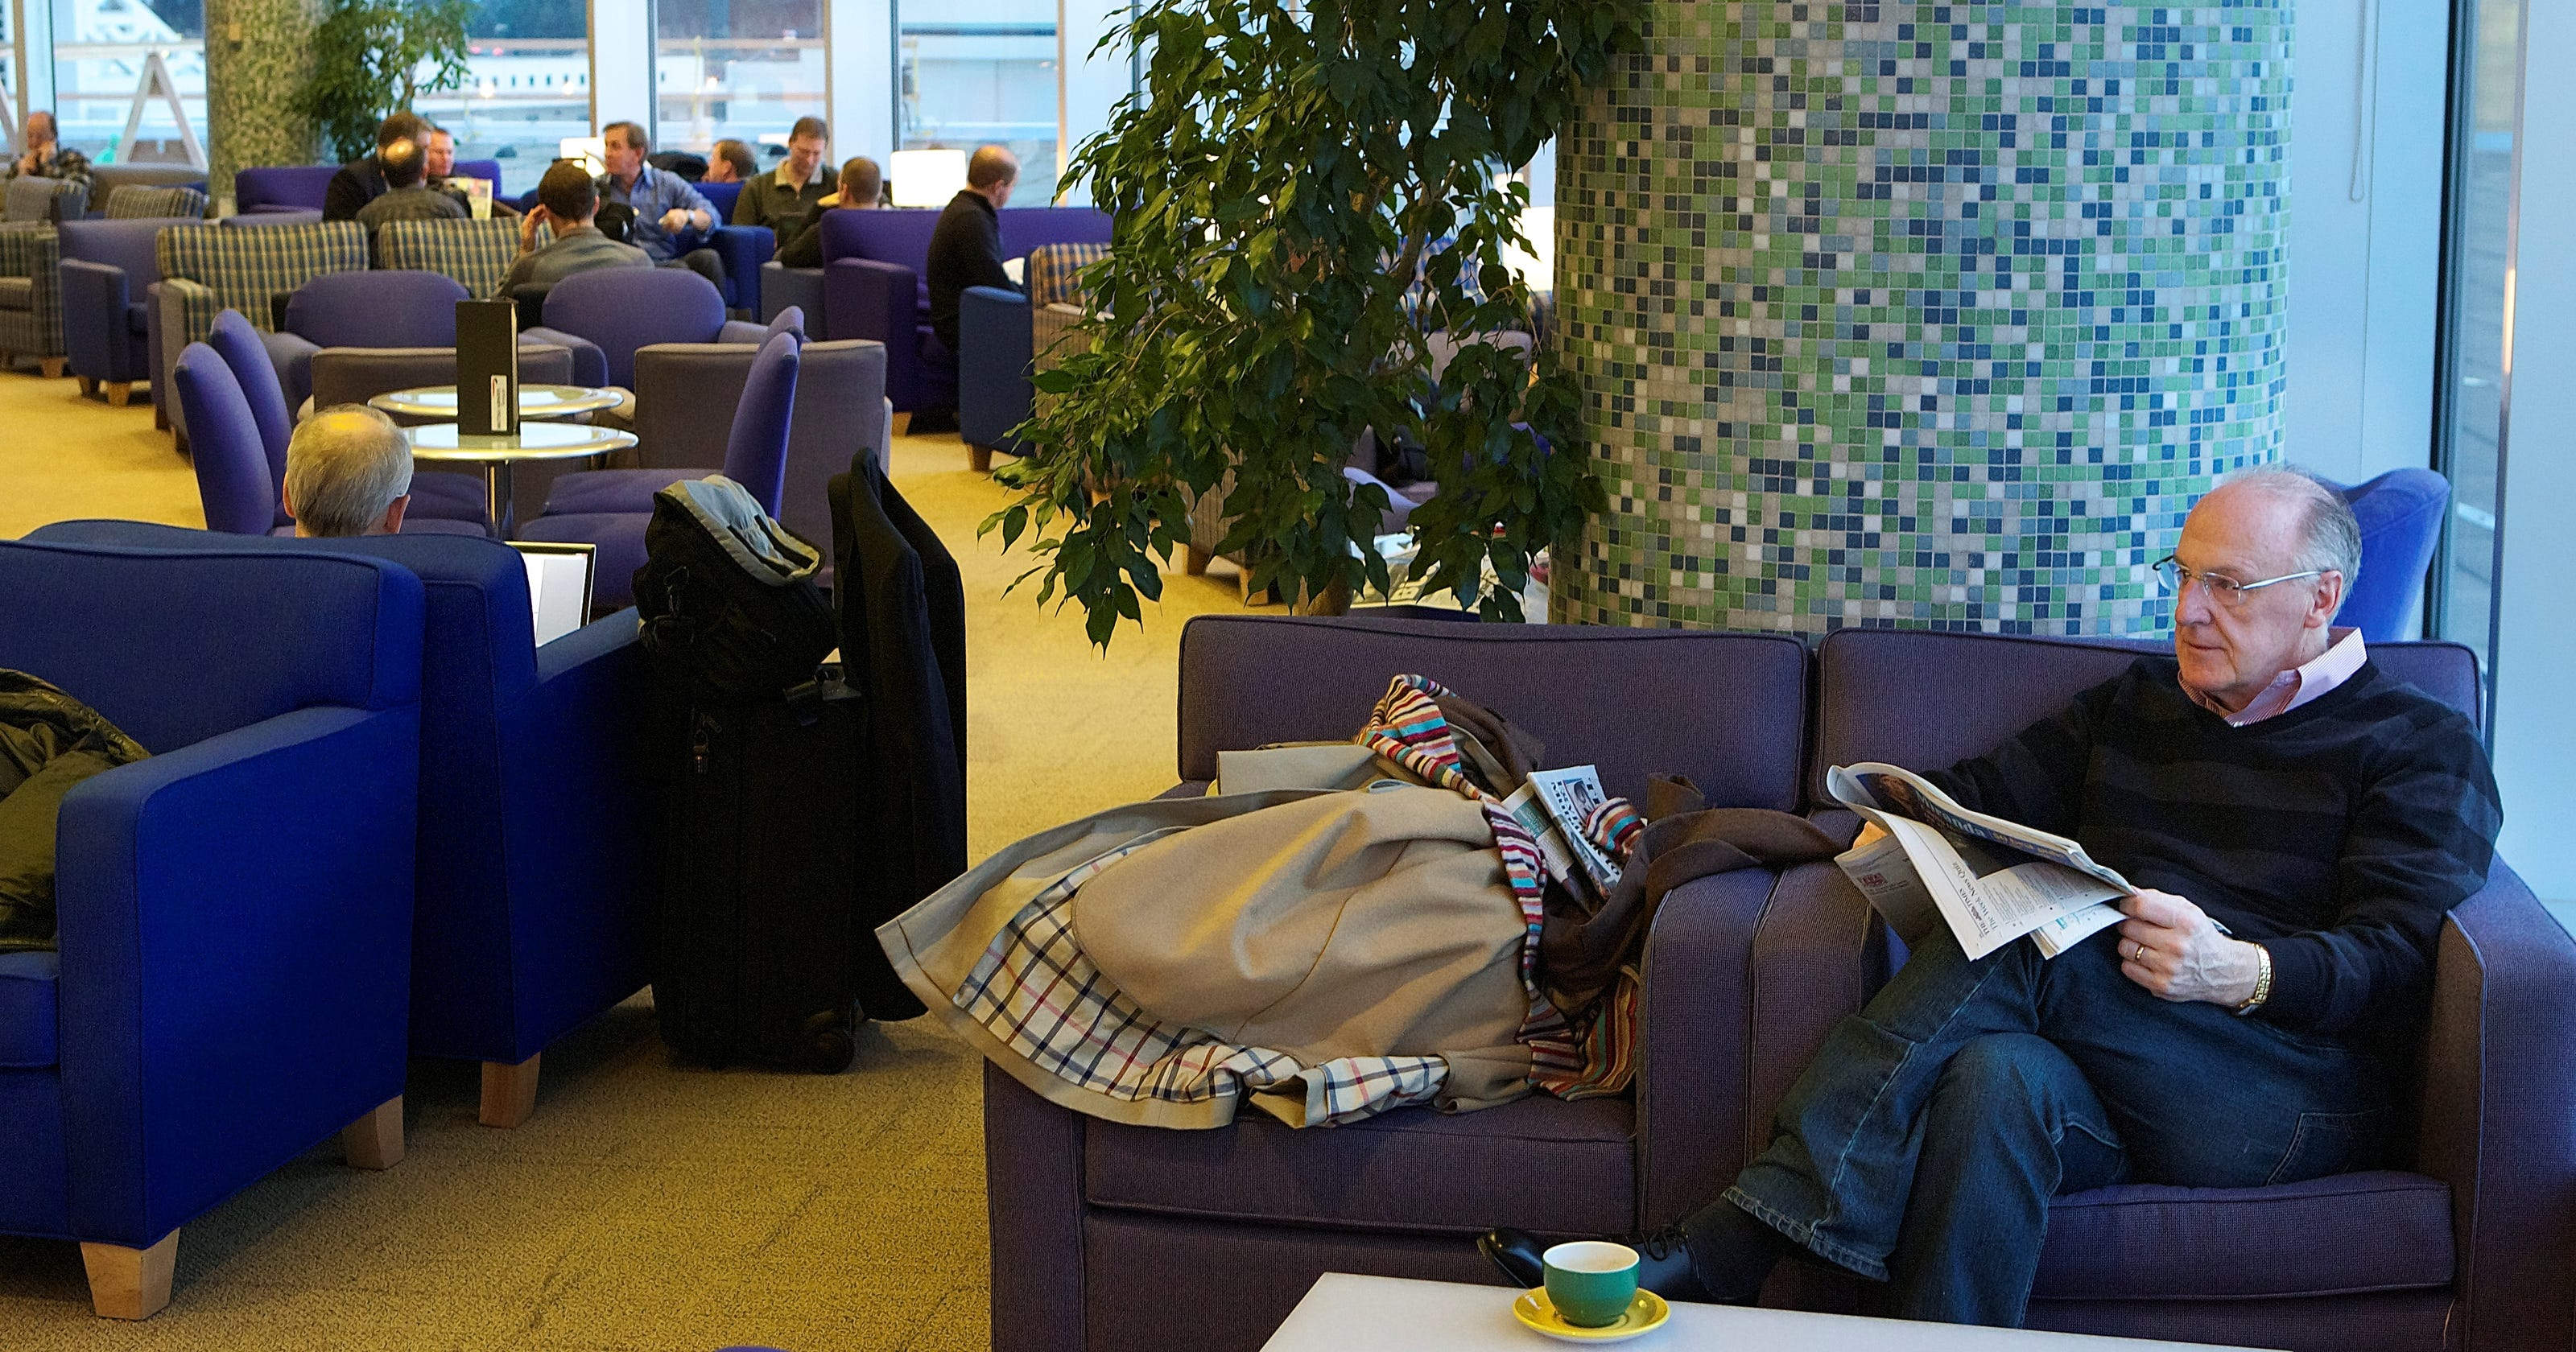 Airport Lounges 101 Why To Use Them And How Get In